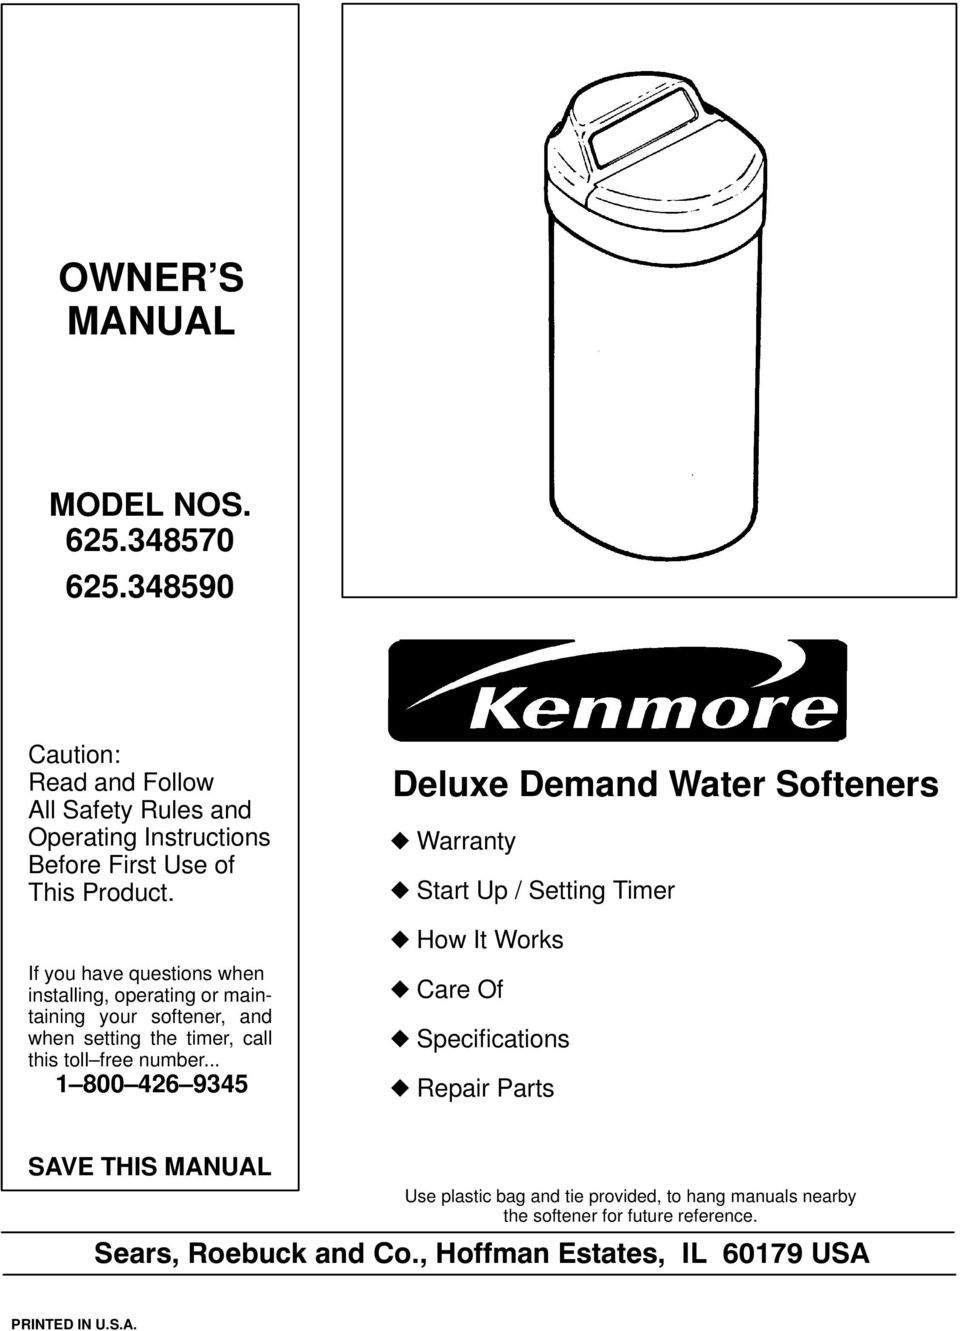 OWNER S MANUAL  Deluxe Demand Water Softeners MODEL NOS - PDF